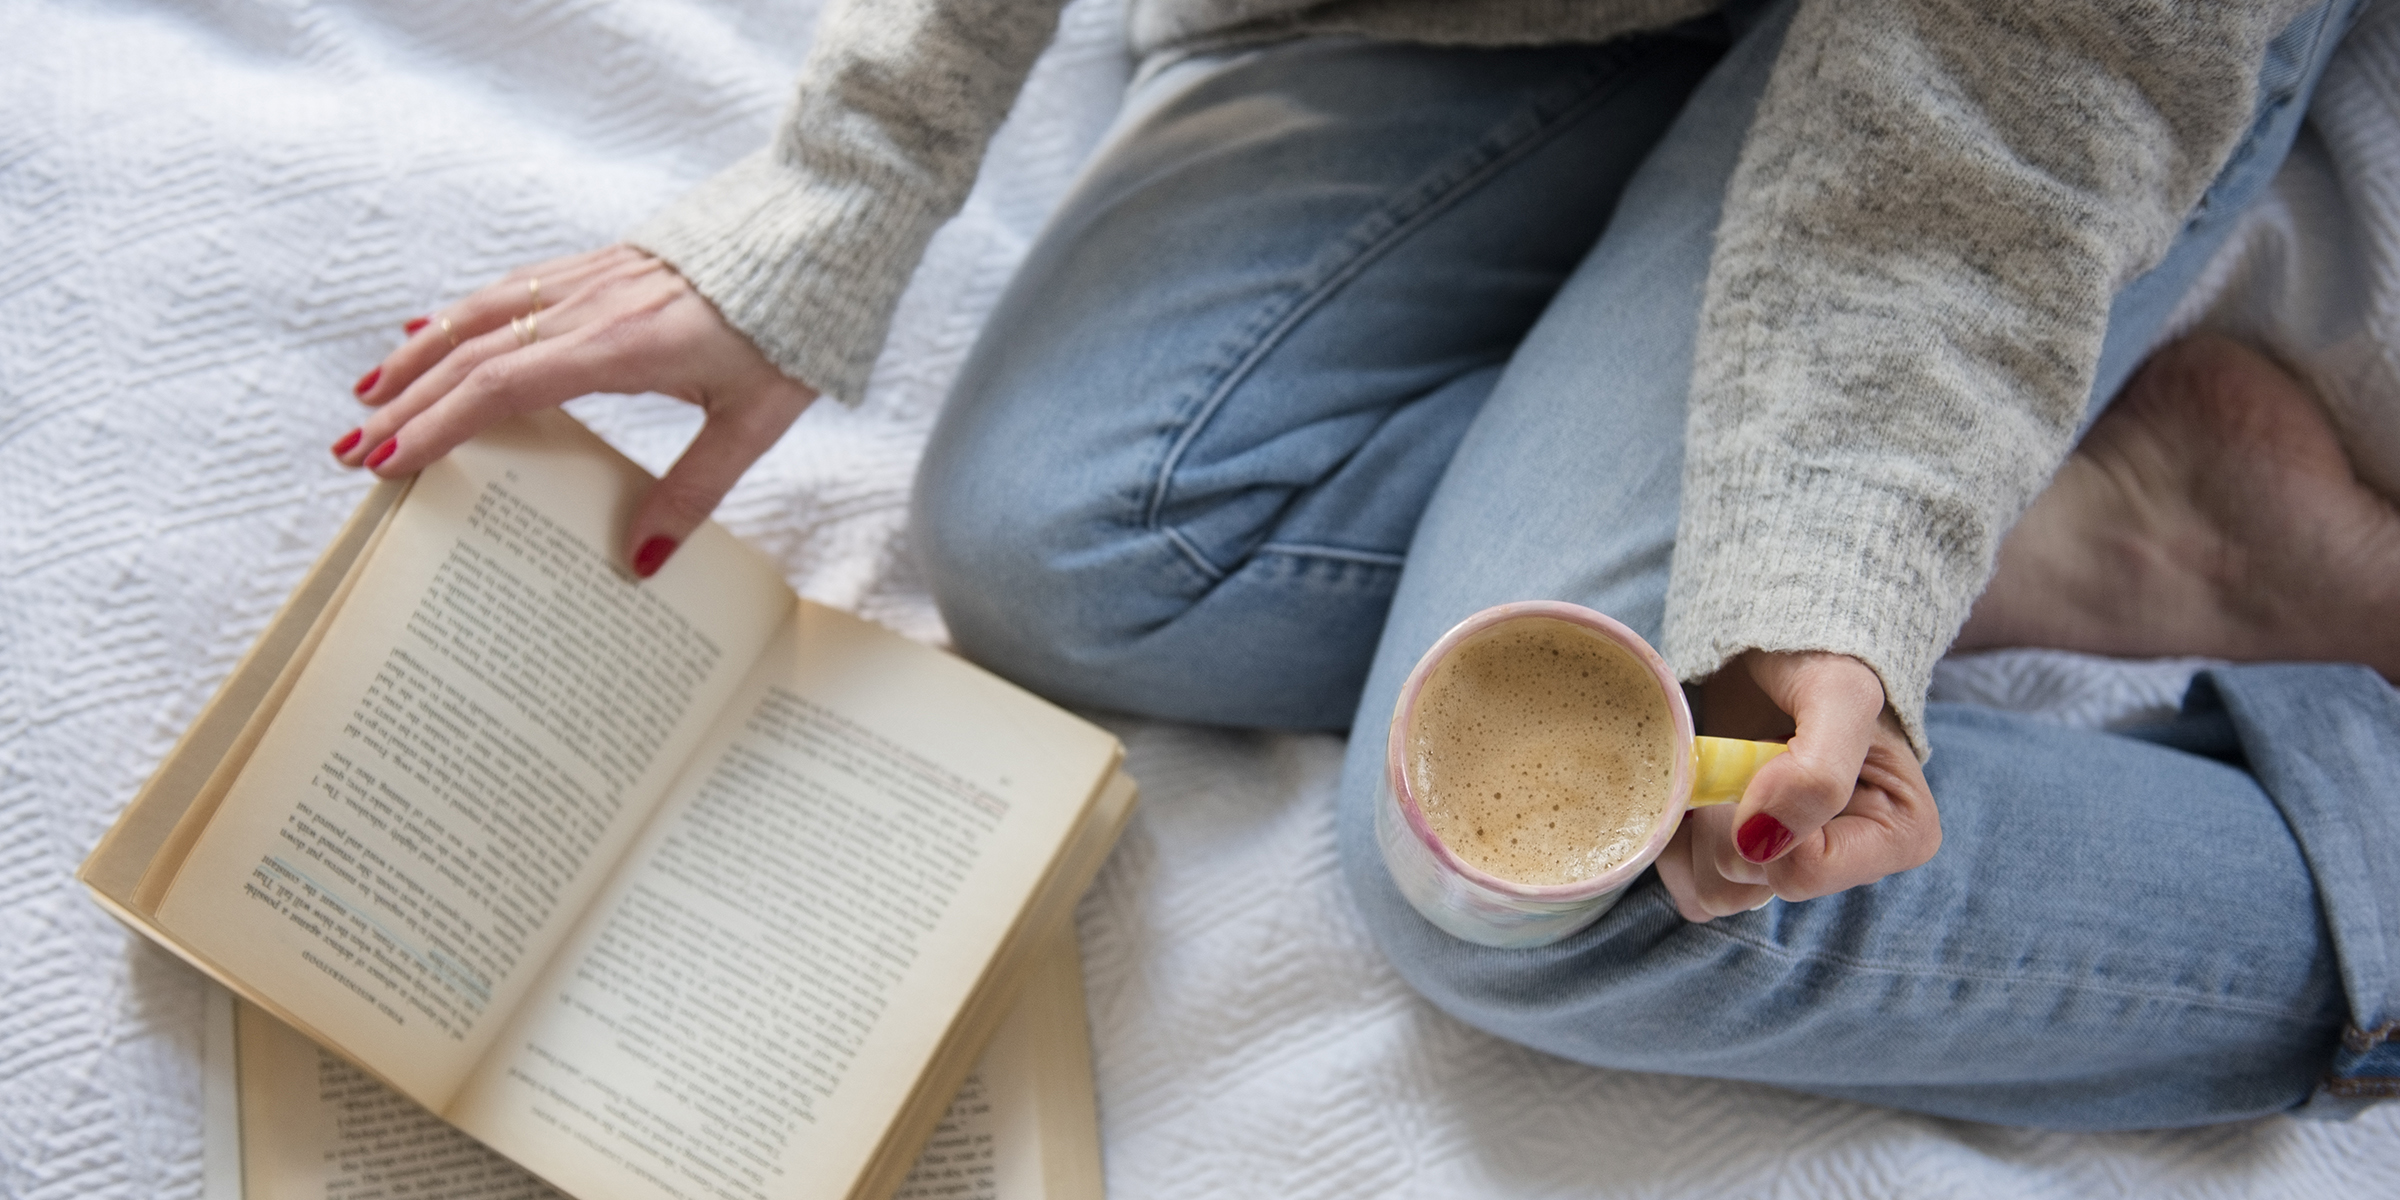 10 Most Anticipated Books Of 2020 According To Goodreads Members